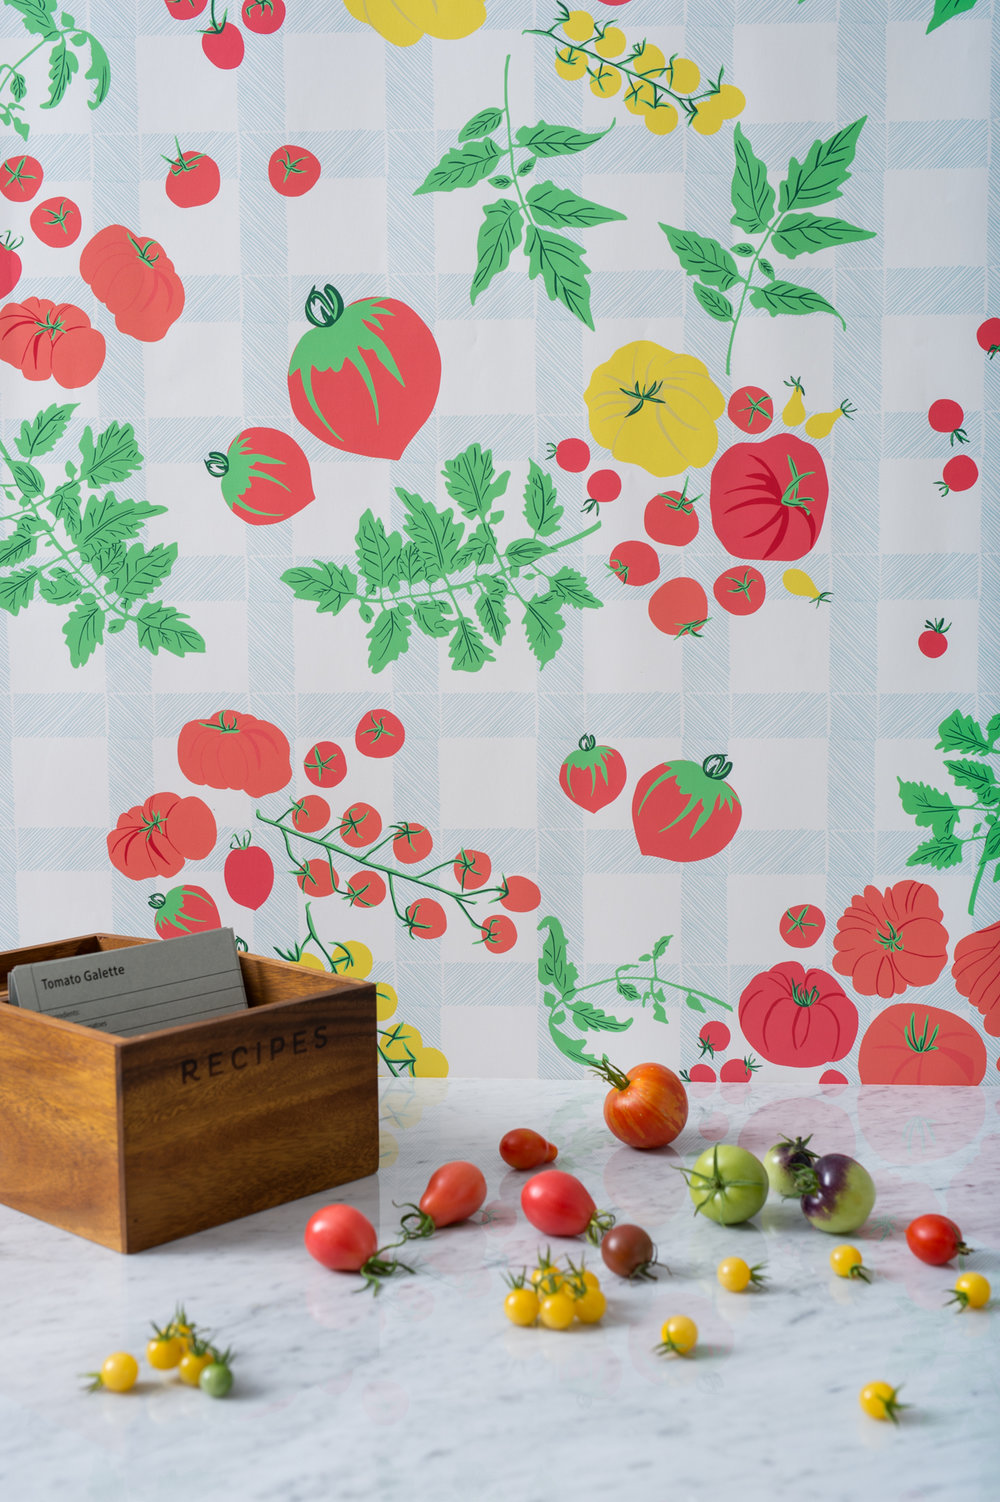 Kate Golding Heirloom Tomato Harvest wallpaper // Modern wallcoverings and interior decor.